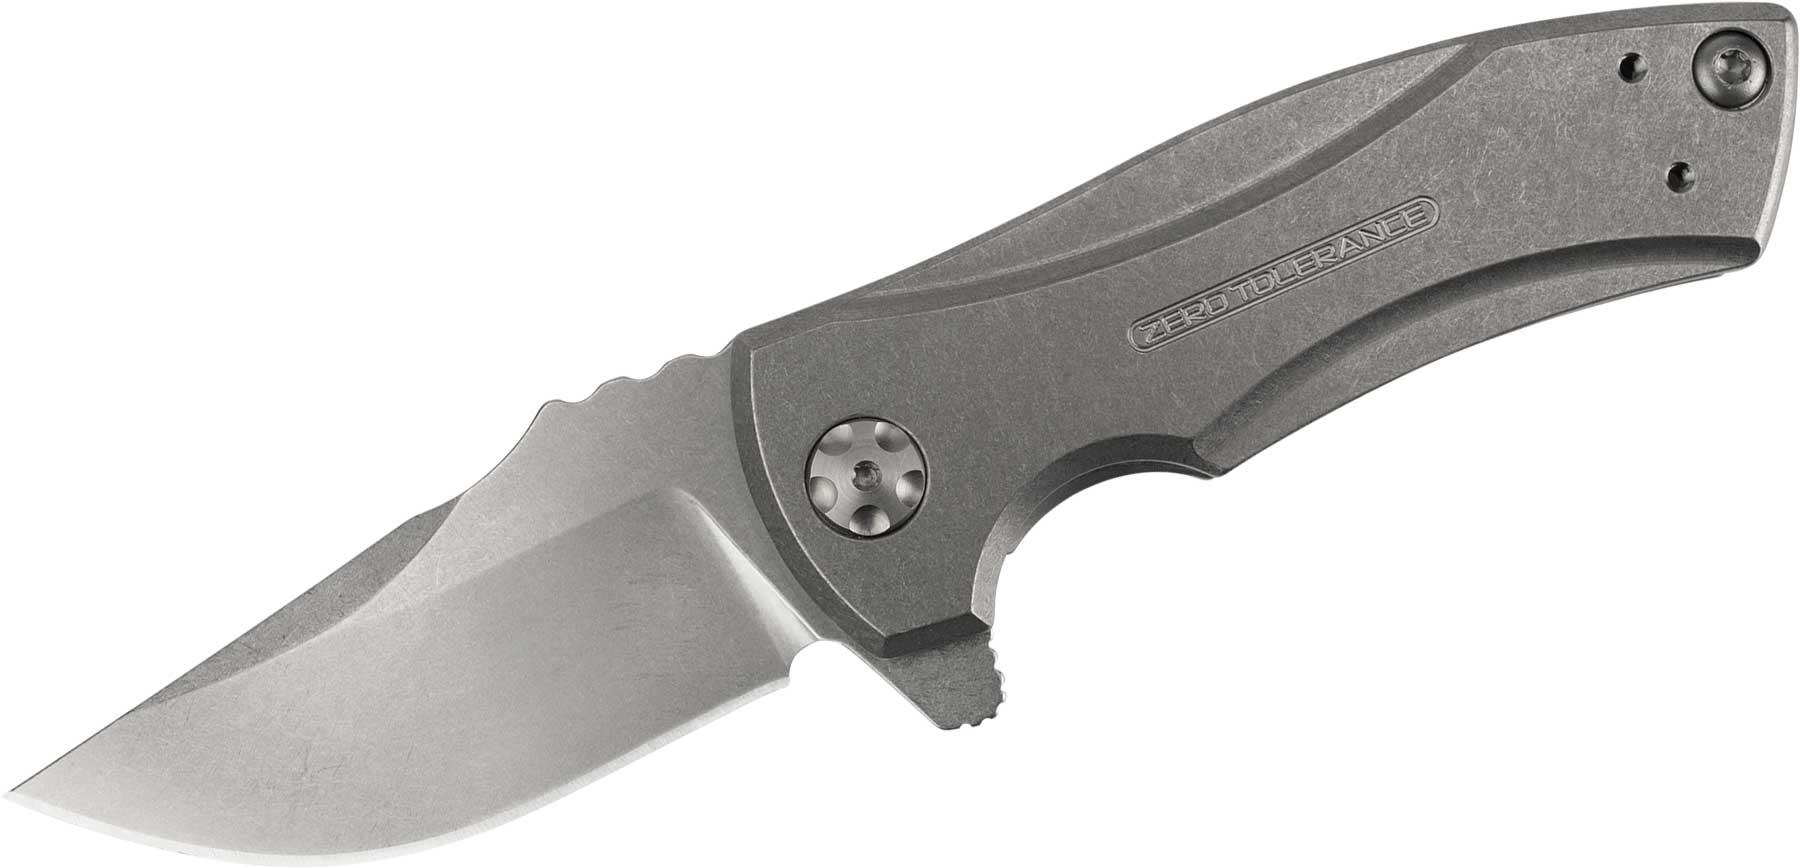 Buy Zero Tolerance 0900, 0909 and 0920 Flipper Opening Knives at KnifeCenter